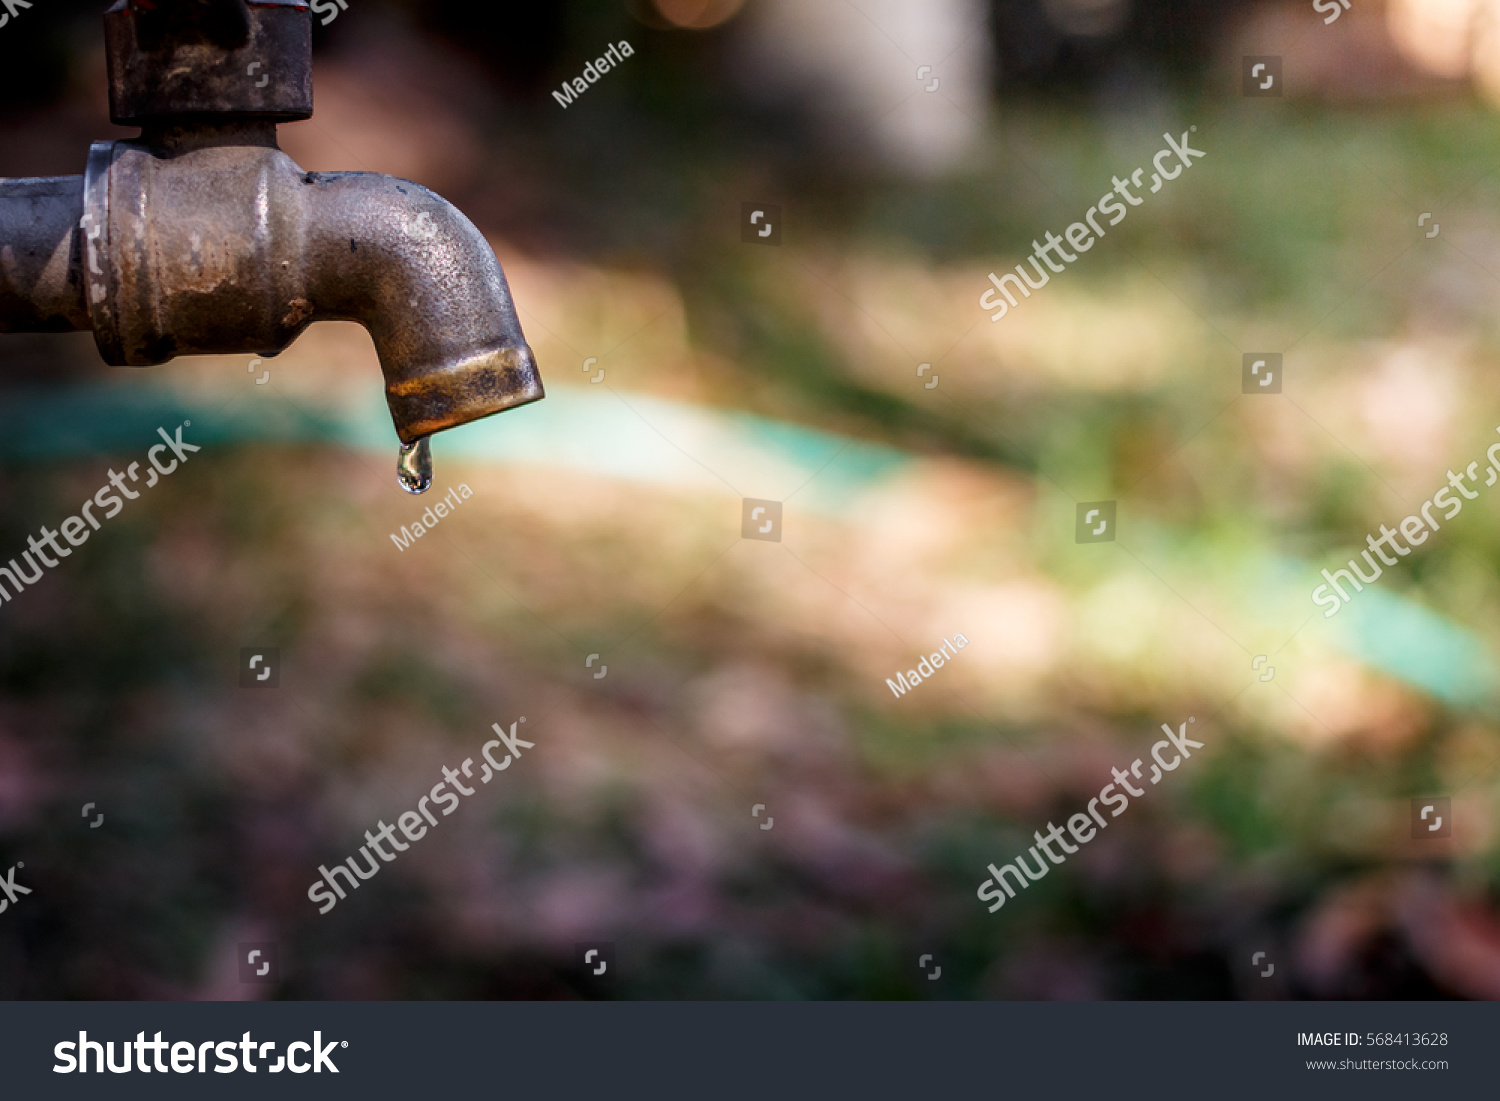 Soft Focus Defective Faucet Cause Wastage Stock Photo & Image ...